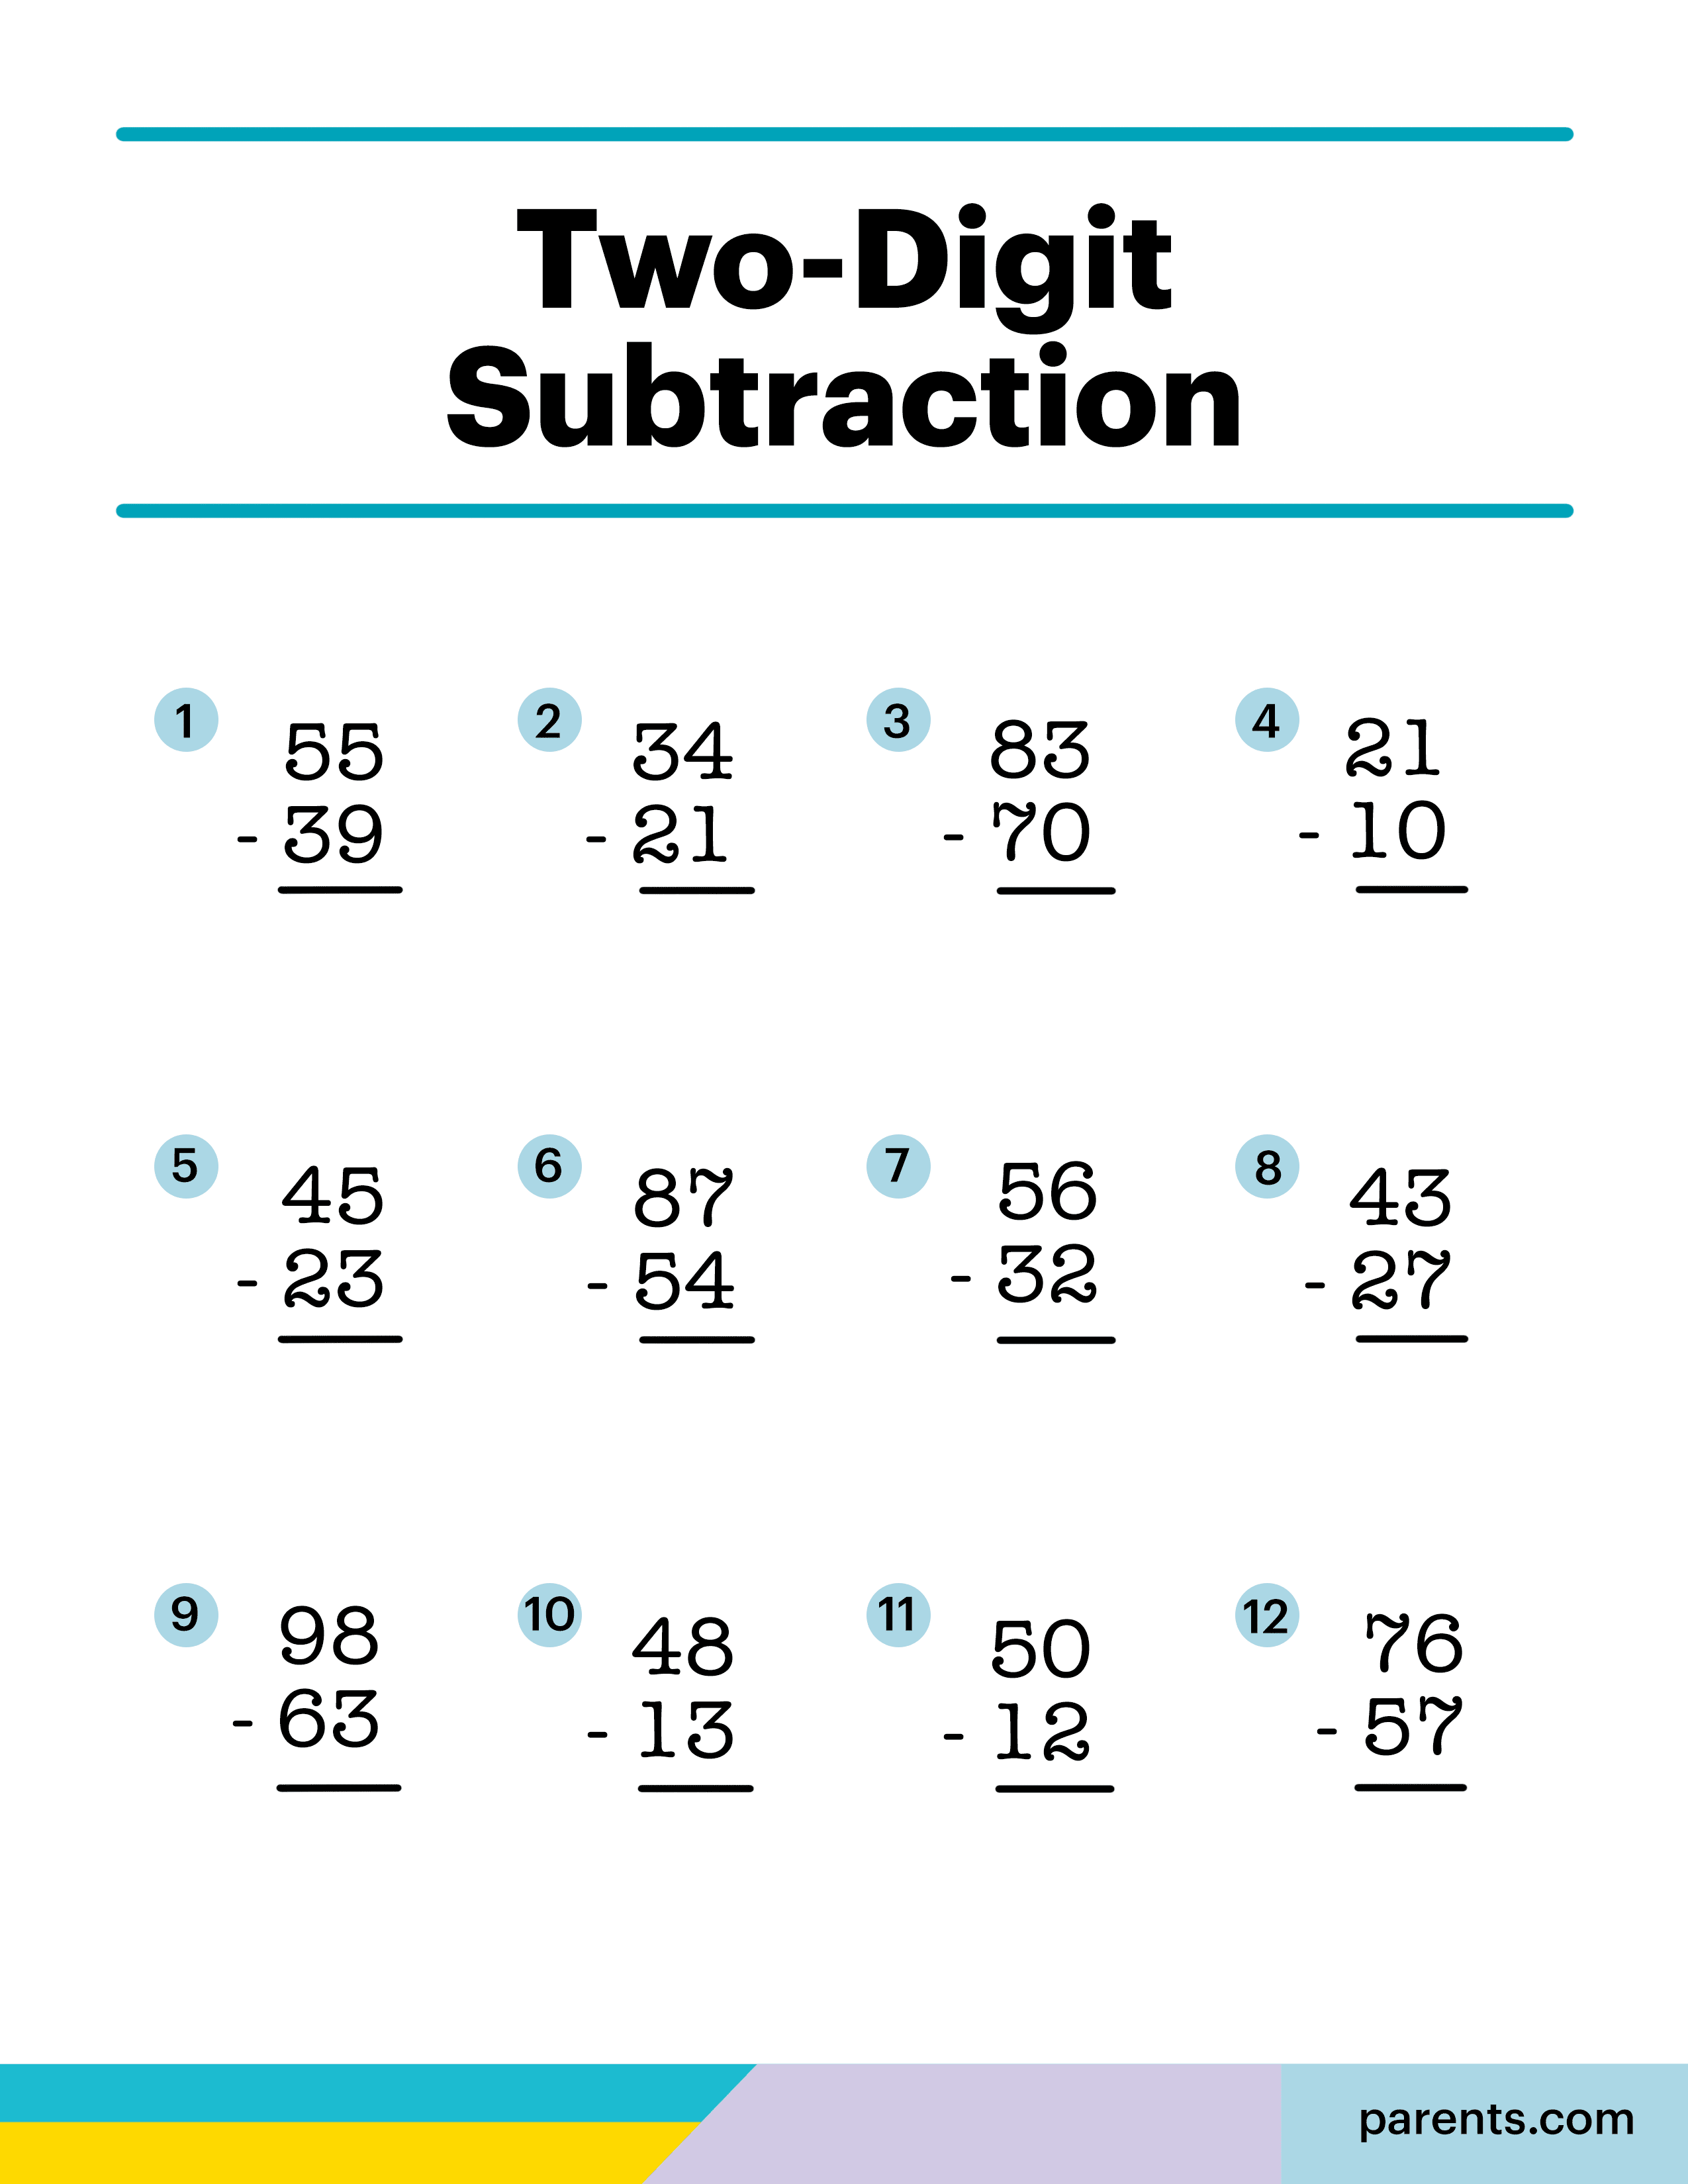 8 Subtraction Worksheets For First Through Third Graders